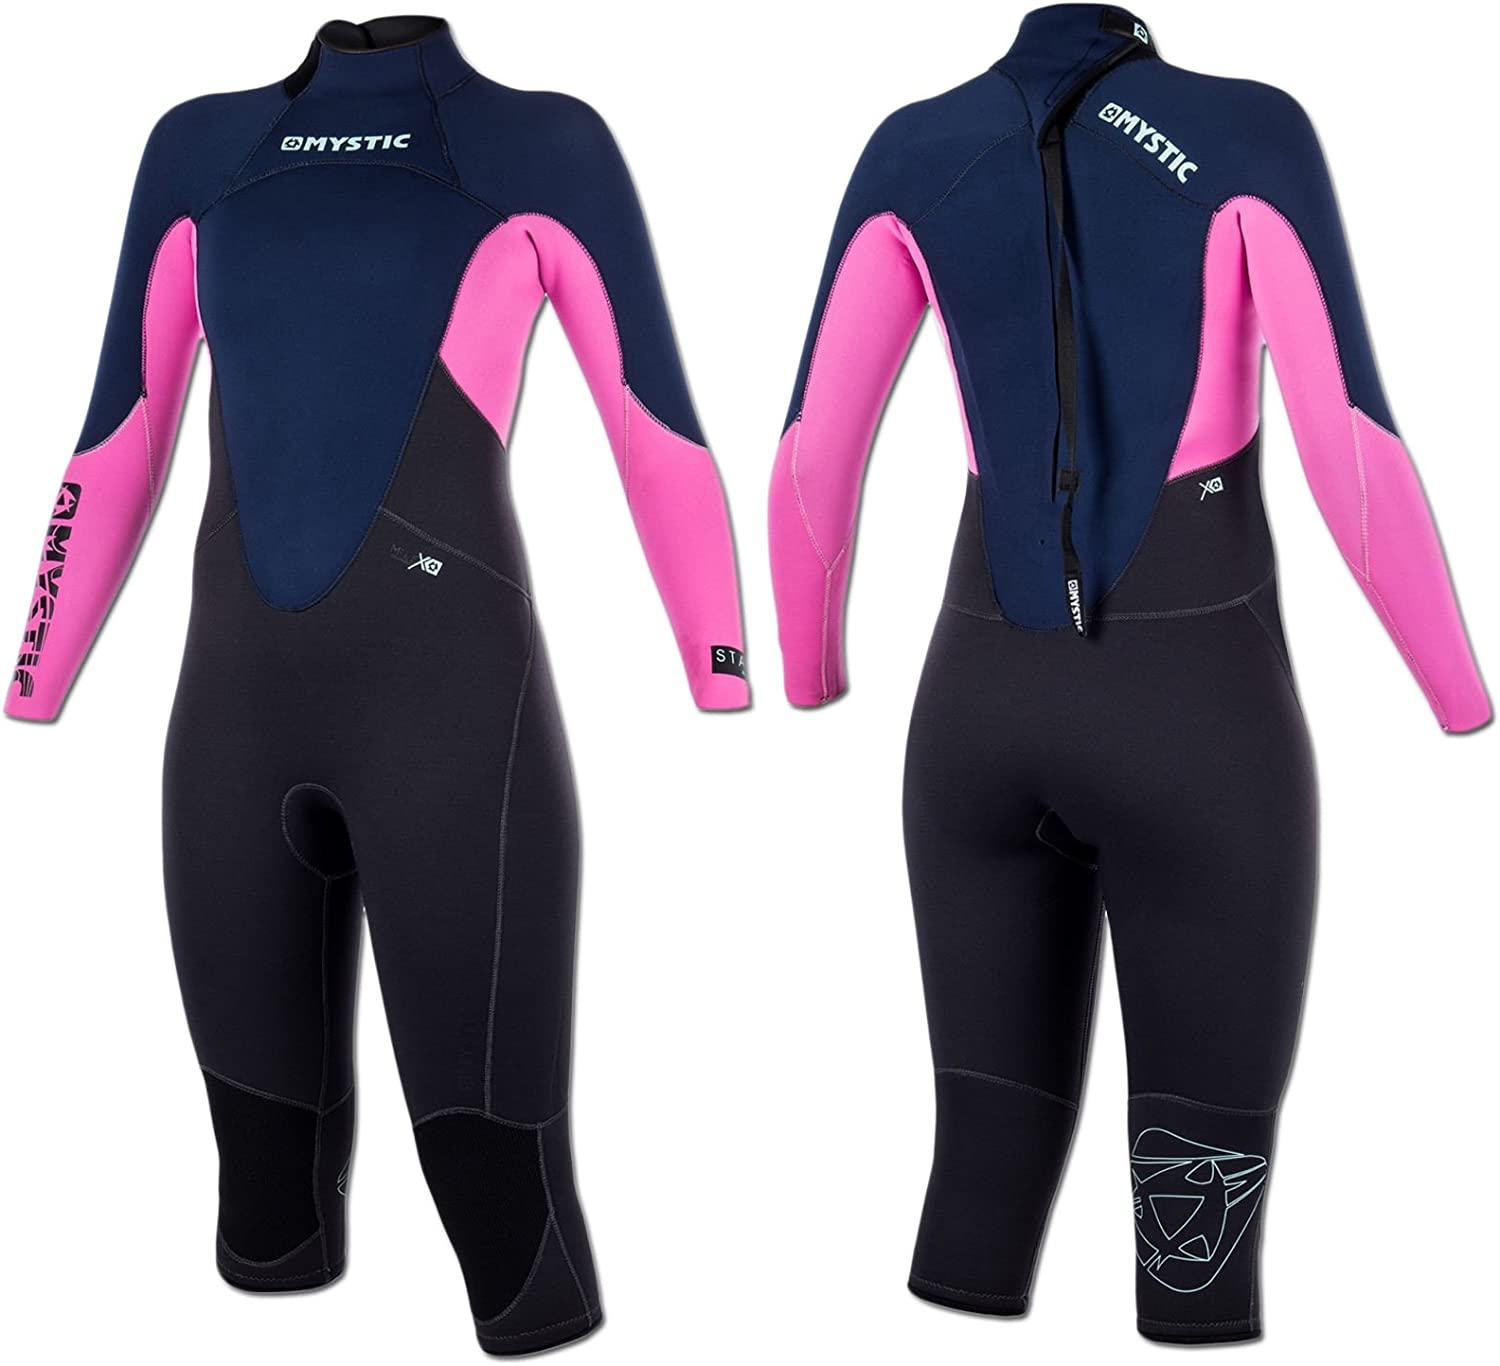 Mystic WatersportsSurf KiteSurf & Windsurfing Star Womens 4 3mm Short Leg Steamer Wetsuit NavyEasy Stretch